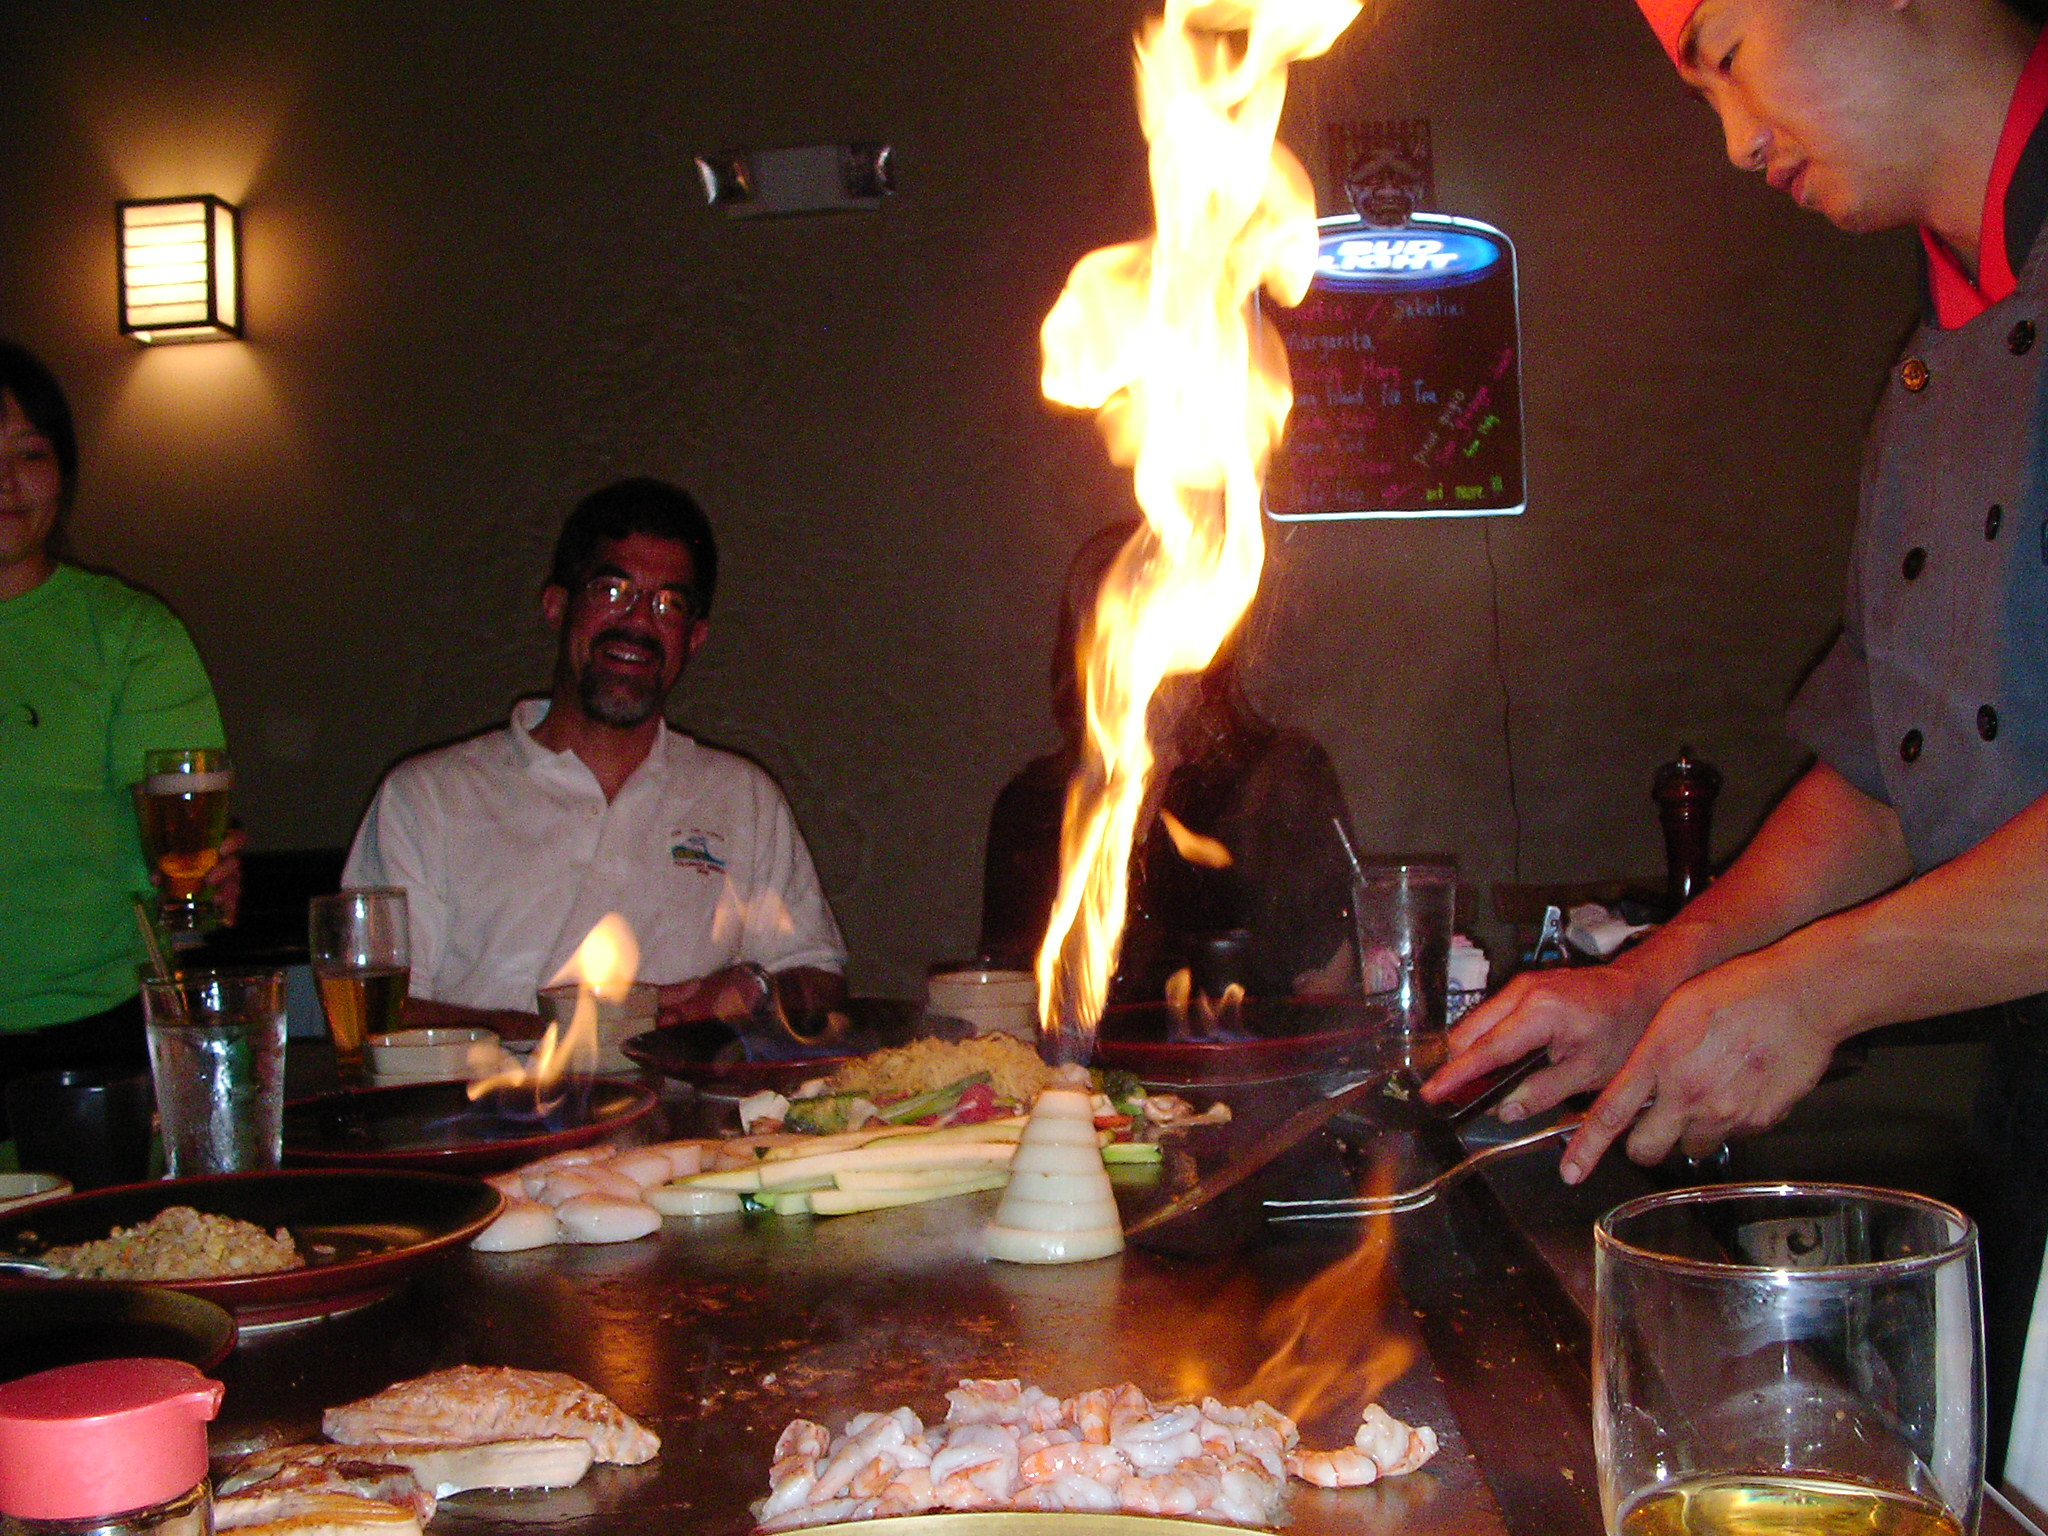 illustro treated some customers to a night out at a Japanese restaurant -- and things were hot!